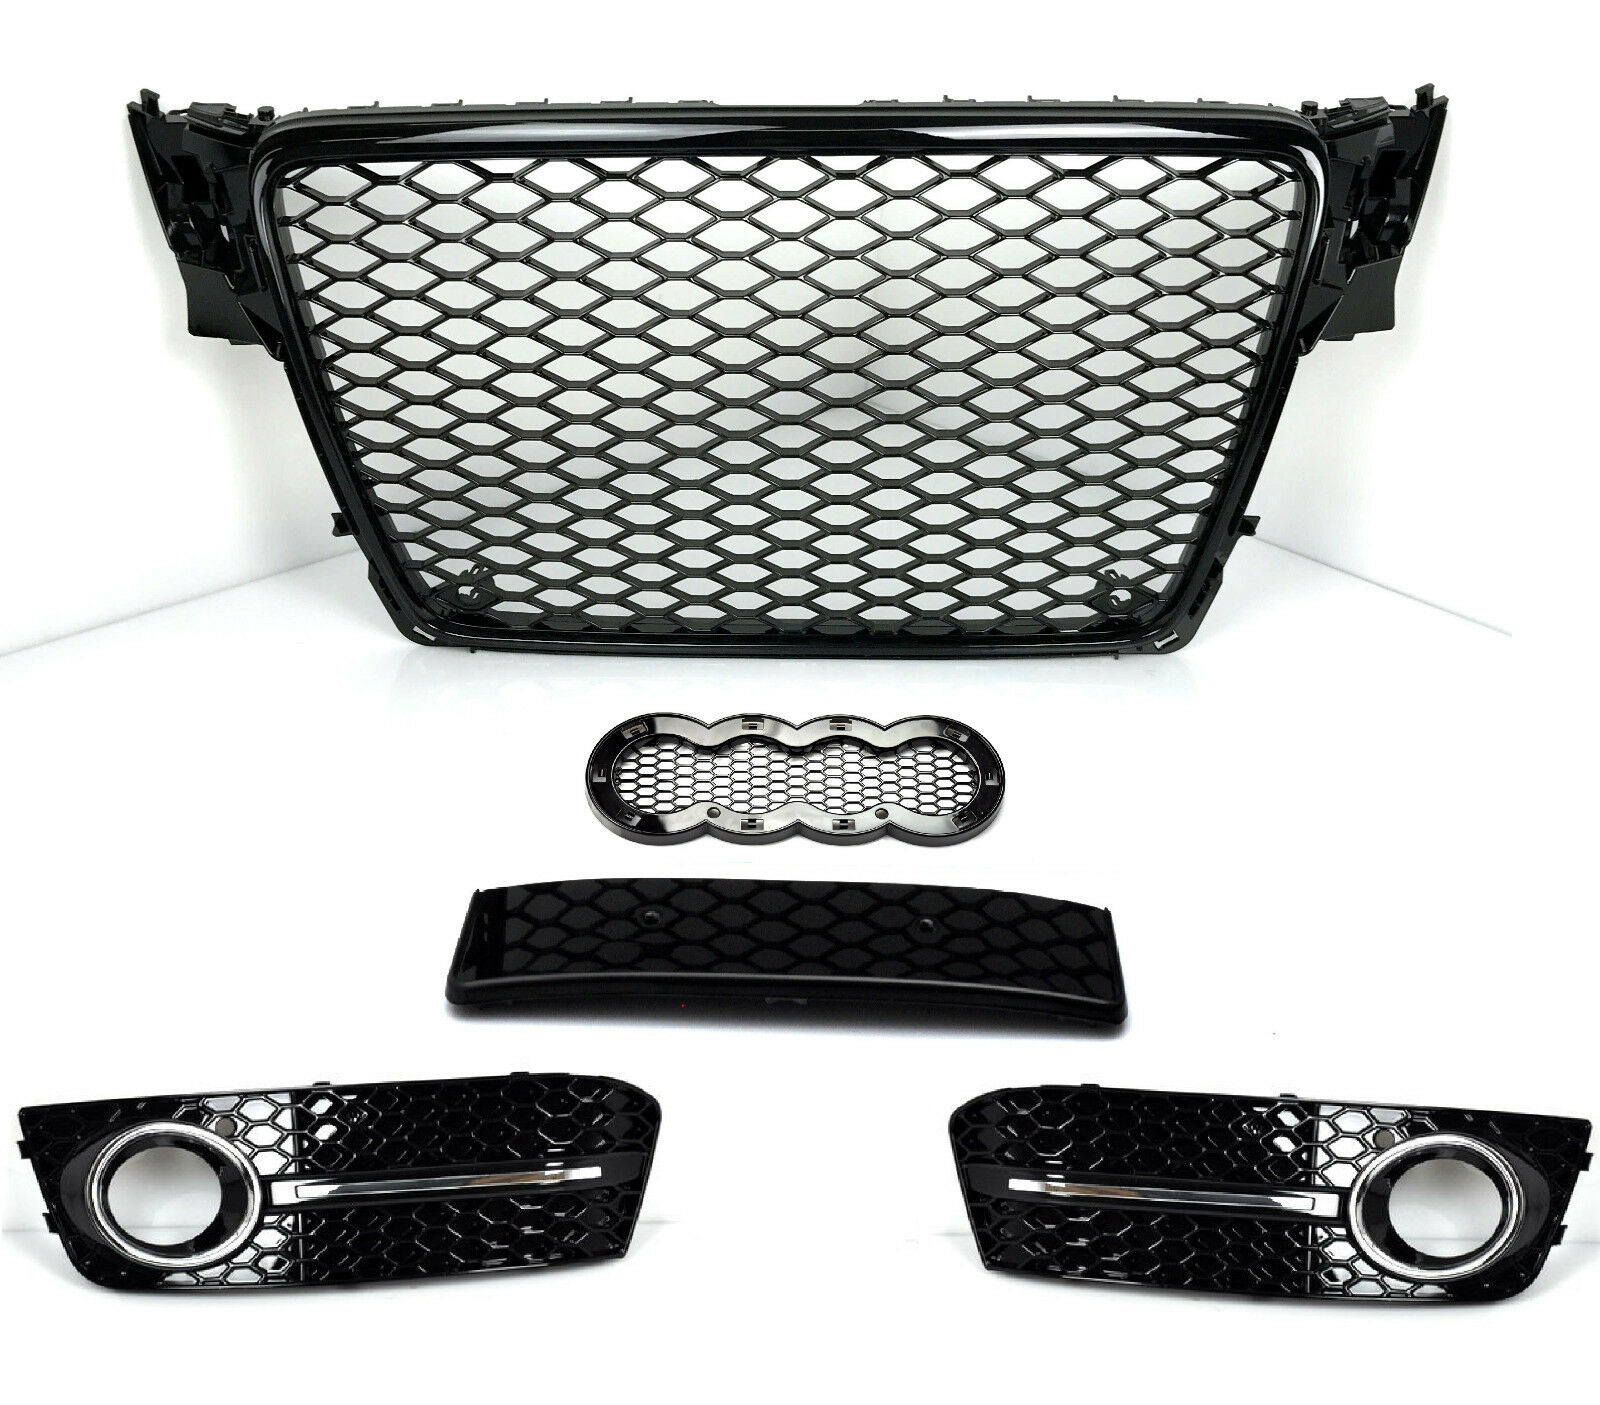 Rs4 Look Grill Fur Audi A4 B8 8k Limo Avant Wabengrill Kuhlergrill Schwarz